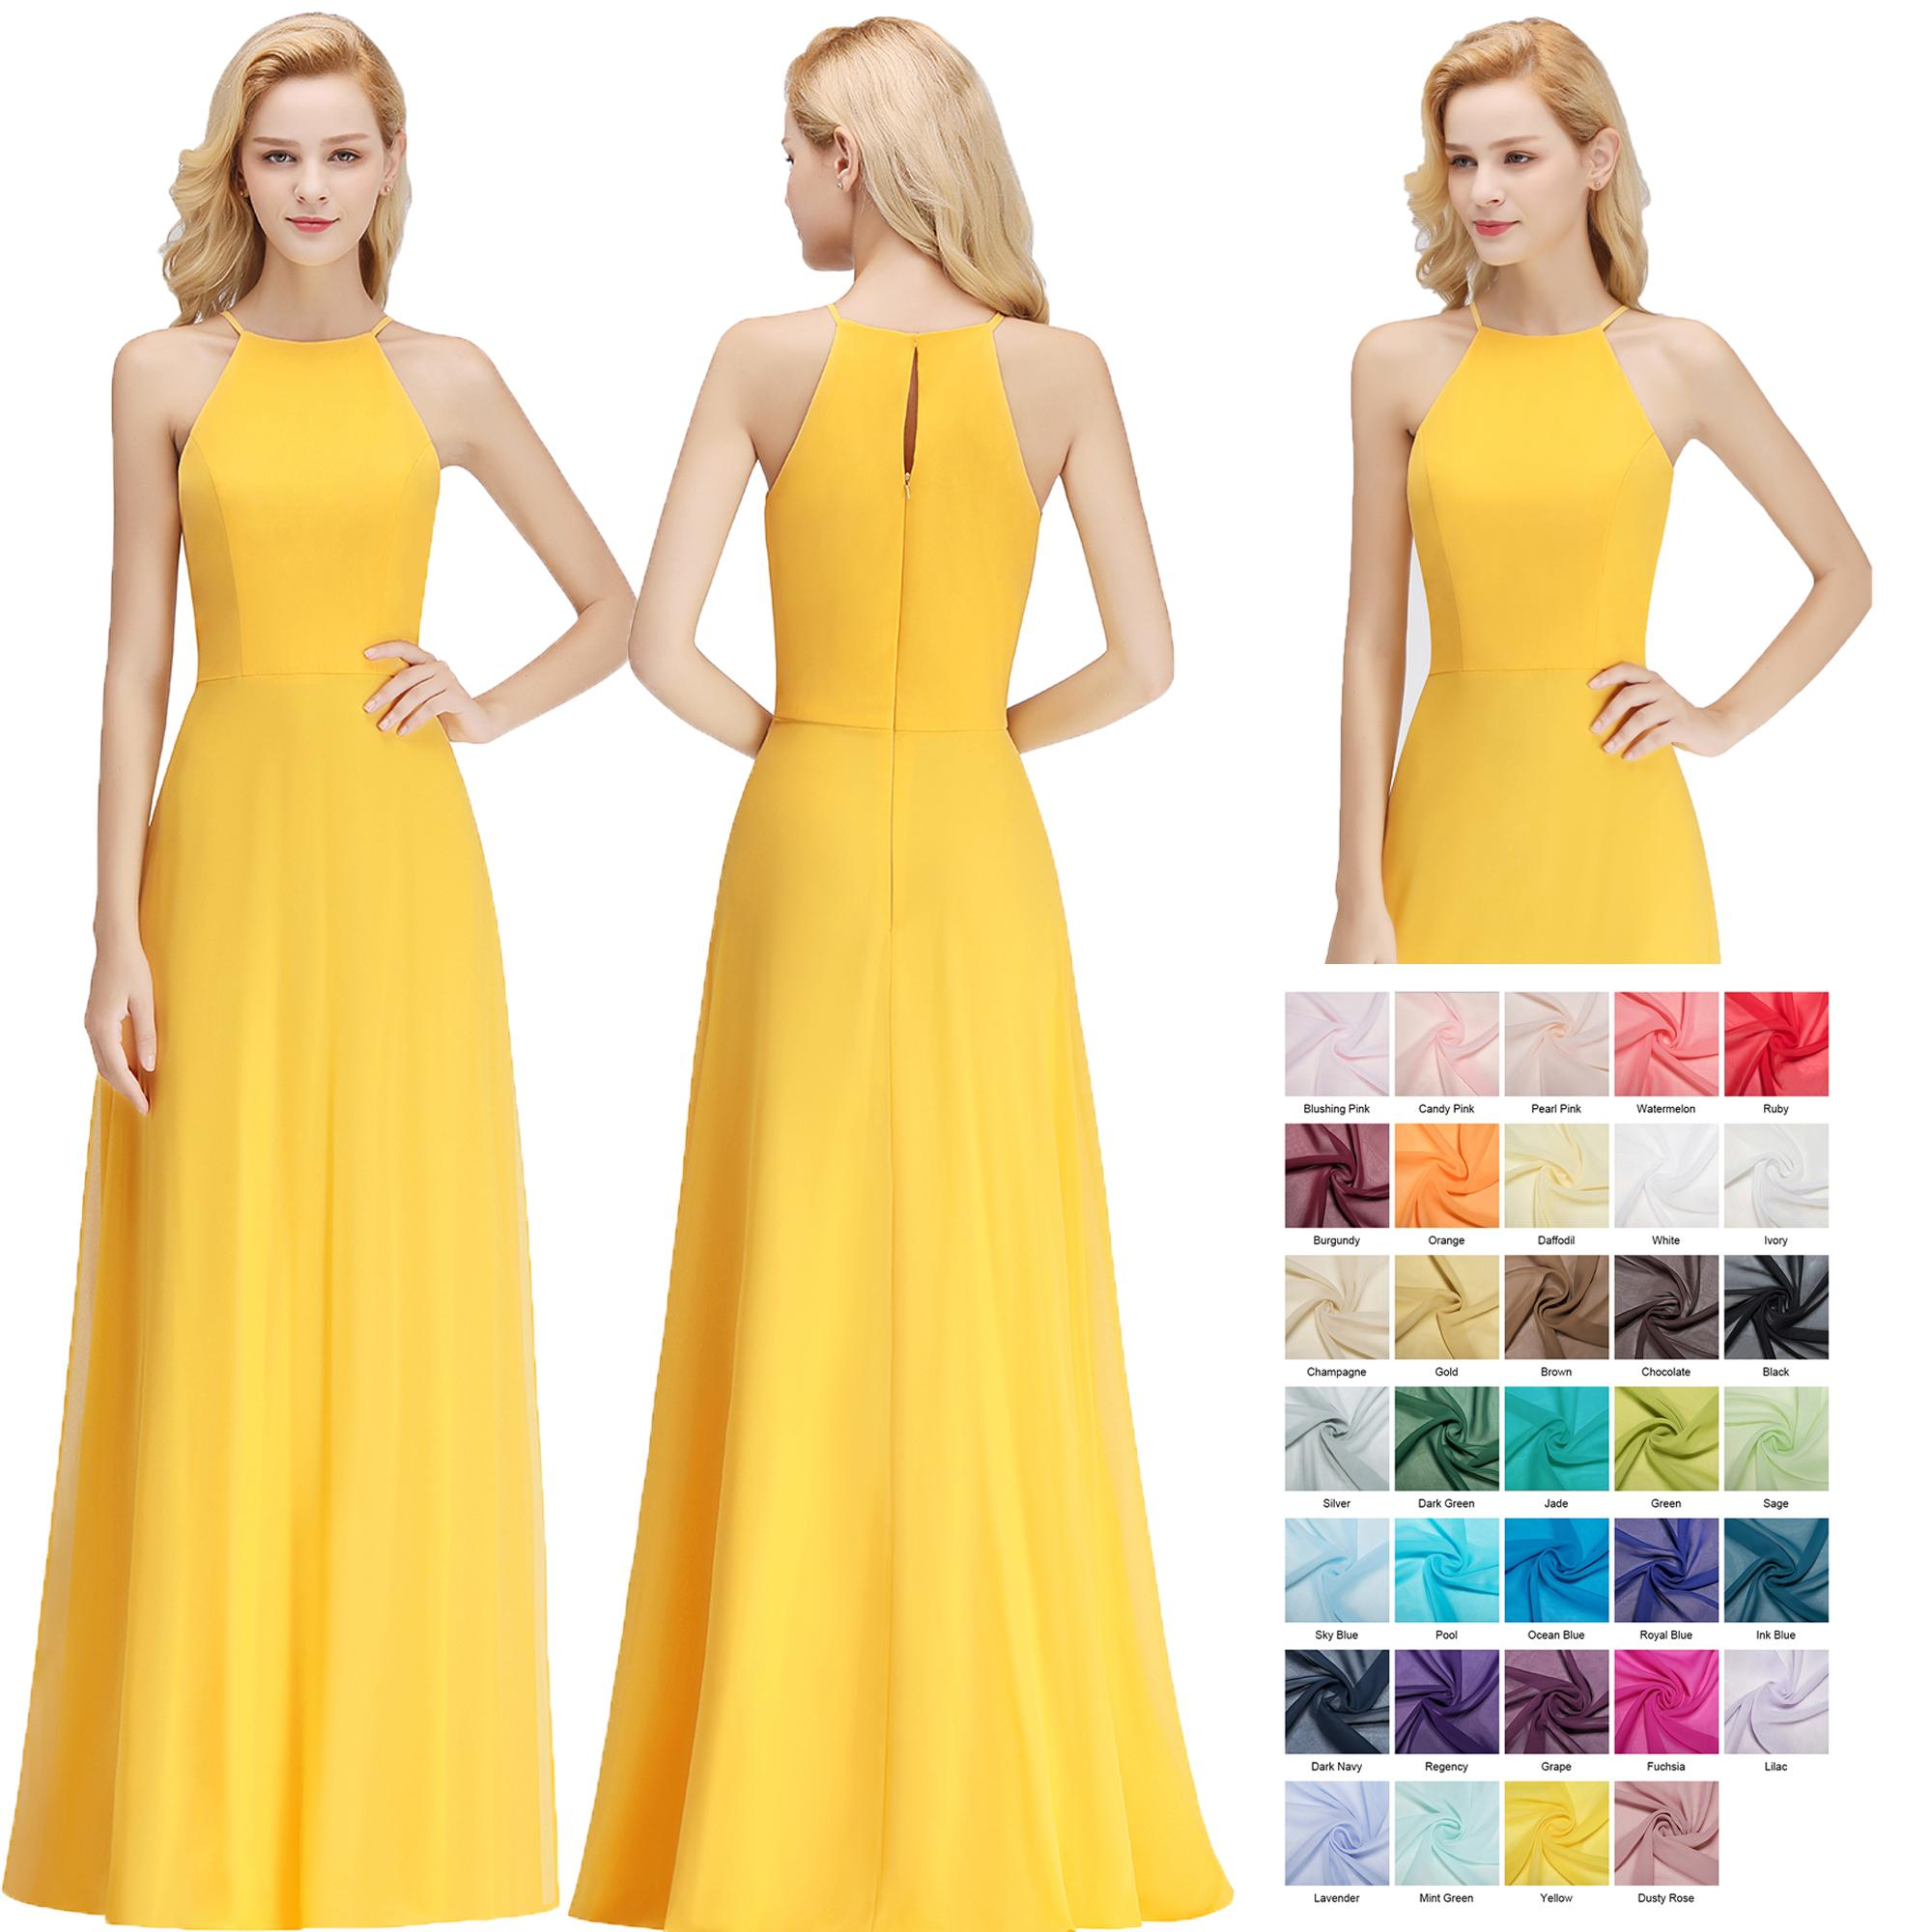 2018 Simple Cheap Yellow Bridesmaid Dresses Sexy Halter Chiffon Floor Length Wedding Guest Dress Real Image Free Shipping BM0038